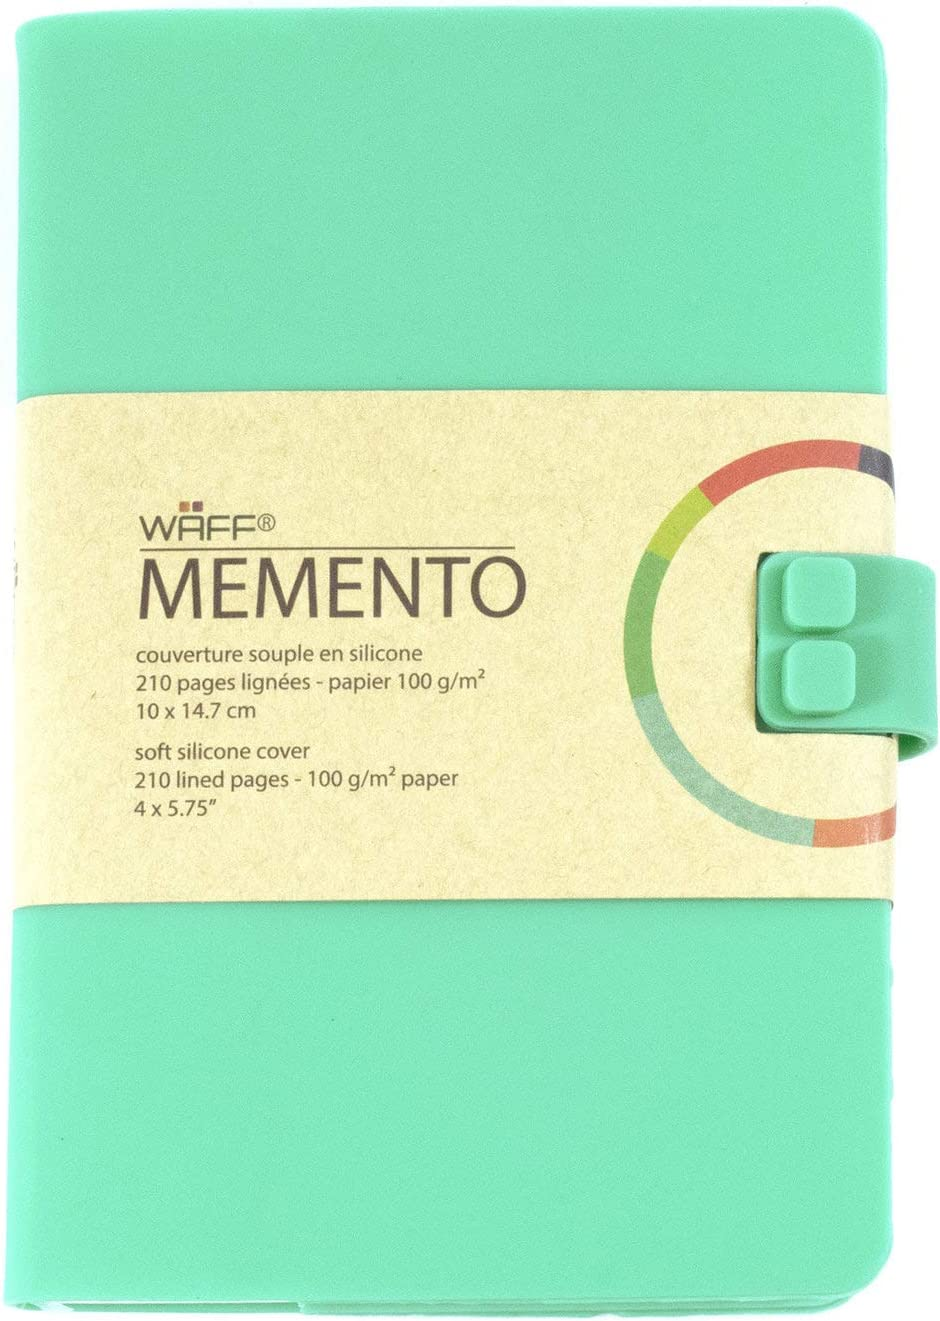 A6 MEDIUM WAFF Memento Silicone Notebook Journal VARIOUS VIBRANT COLOURS